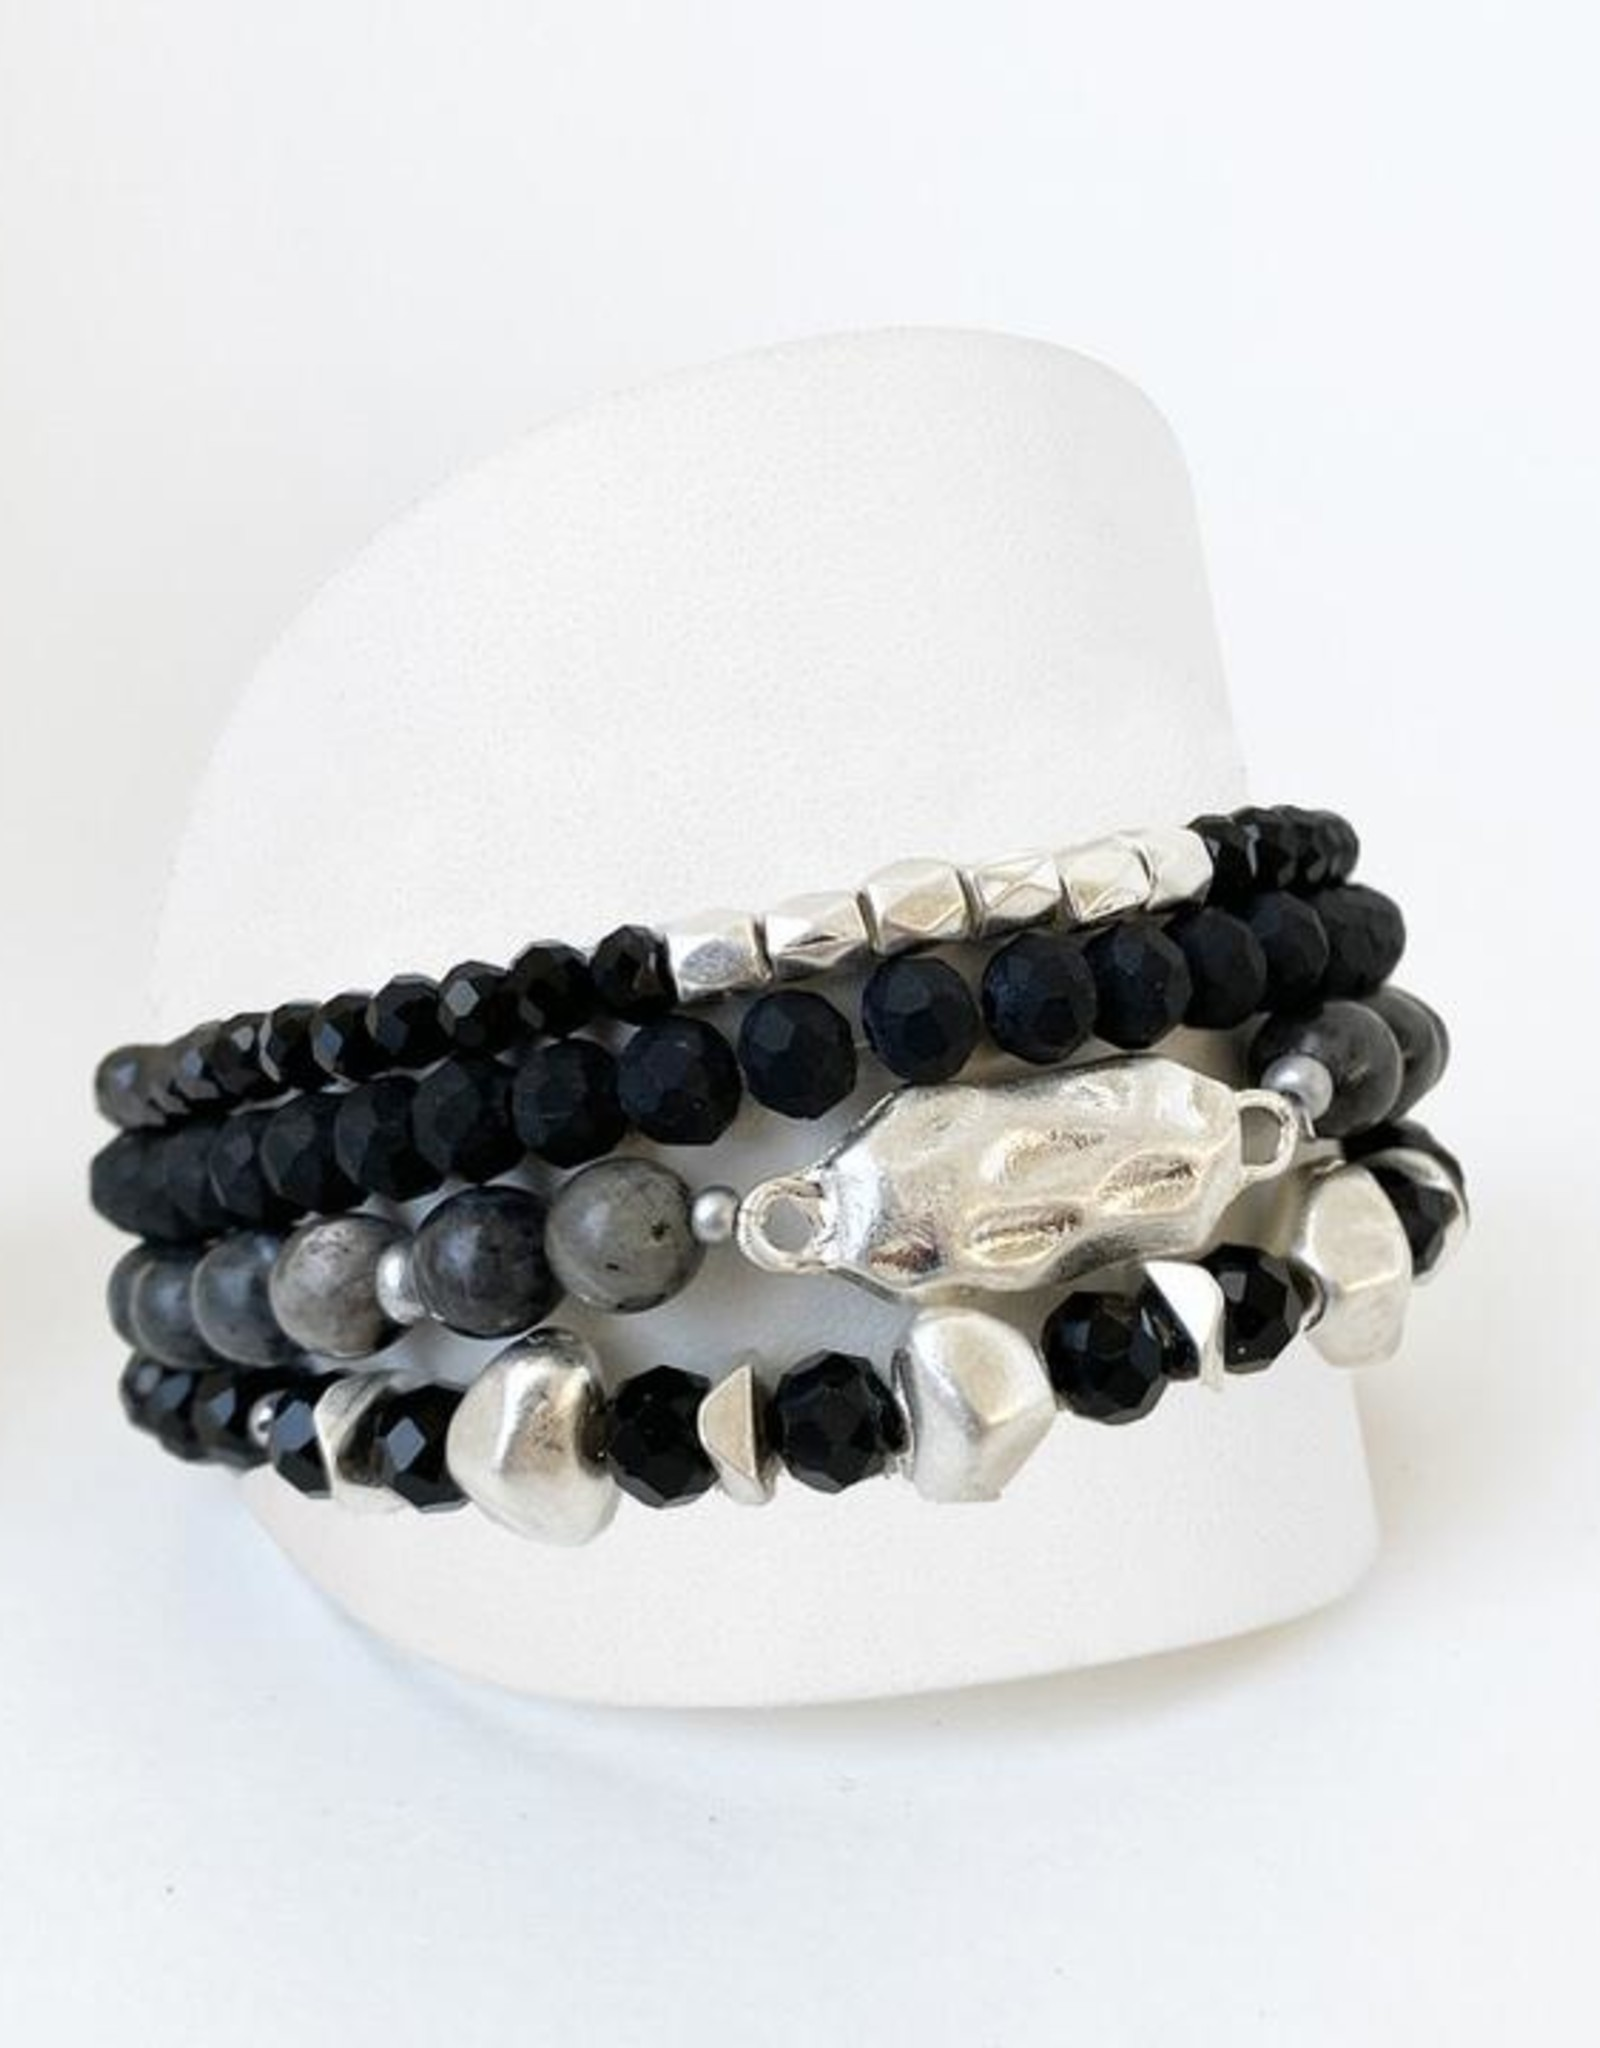 Caracol Caracol 3197 Set of 4 Bracelets with Glass and Metal Beads